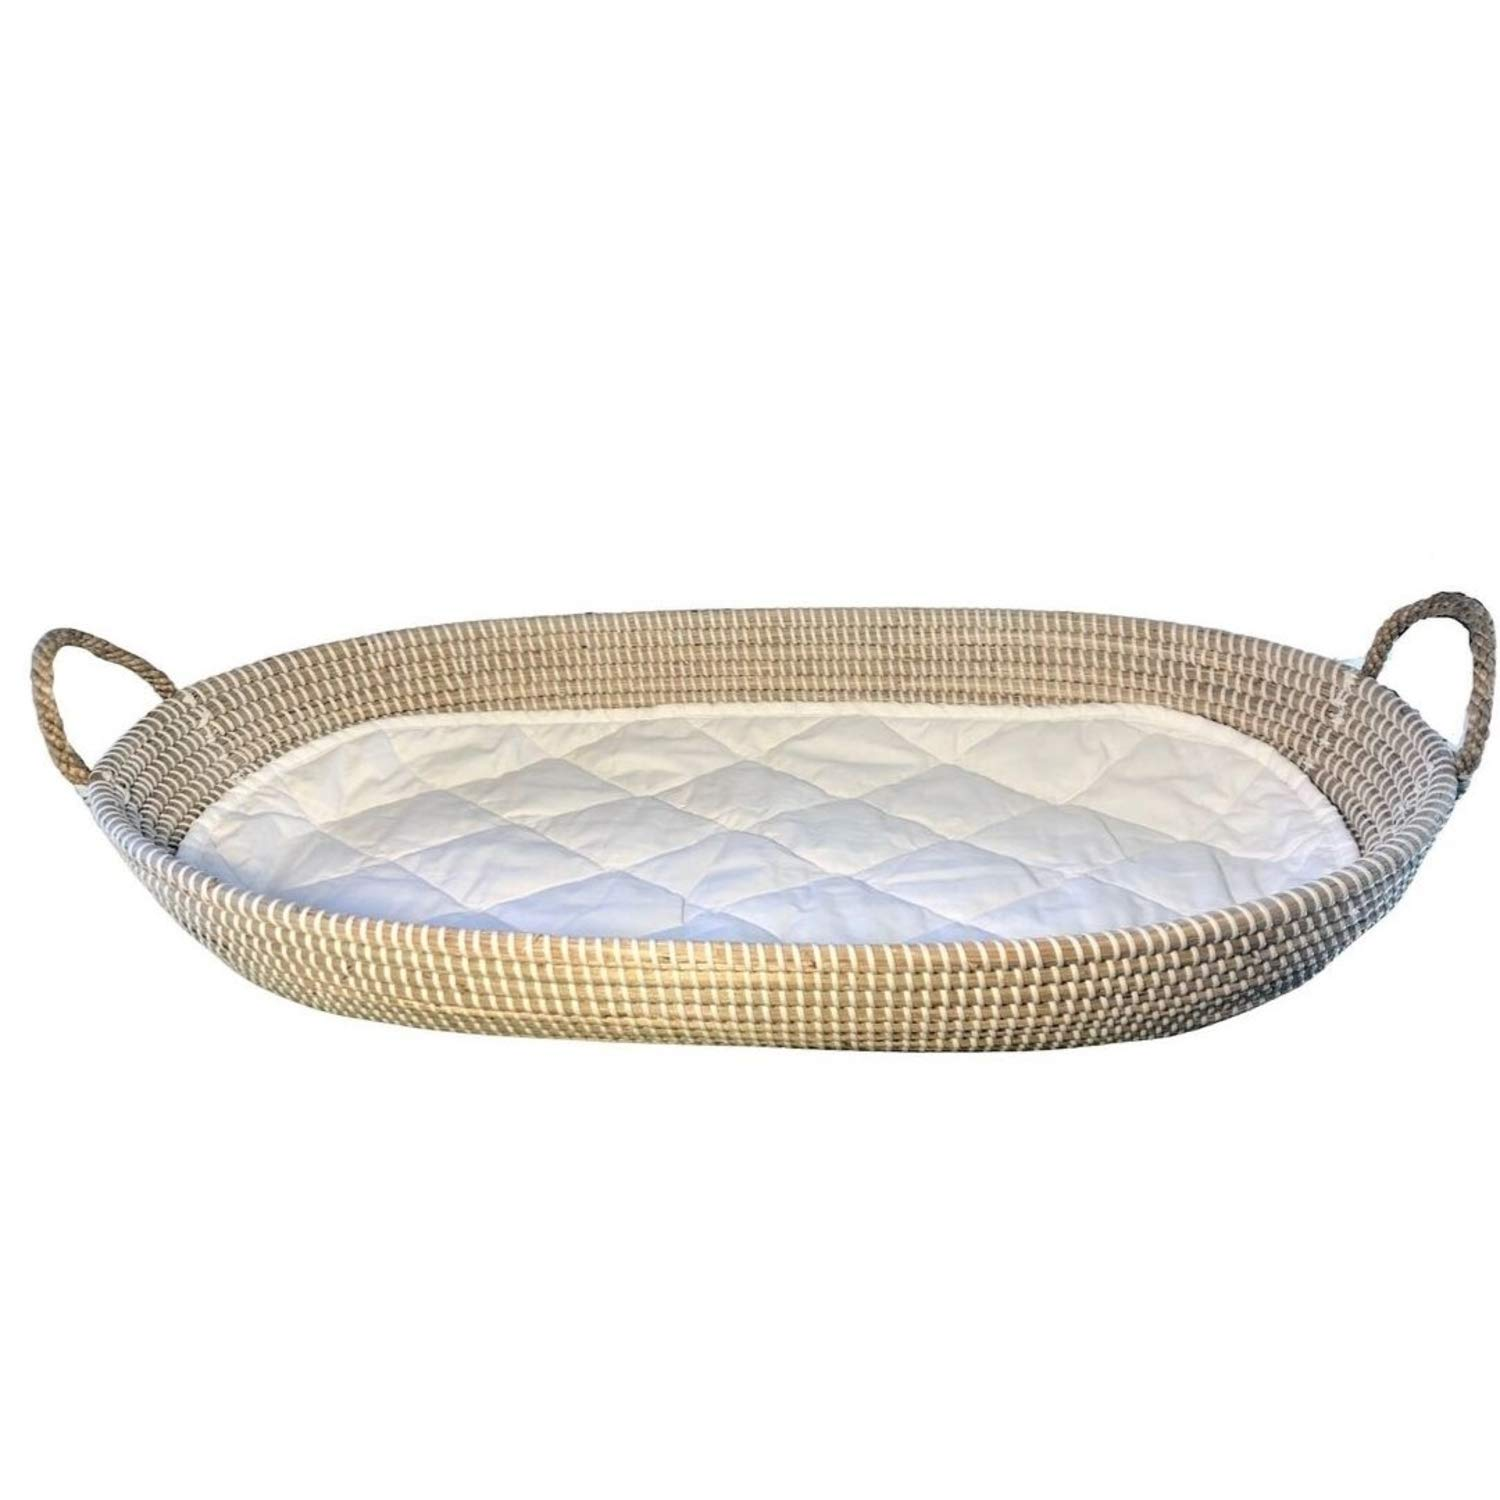 Baby Changing Basket W Quilted Liner Cpsc Safety Certified Diaper Changing Table Pad Alternative Large Seagrass Basket Baby Dresser Topper